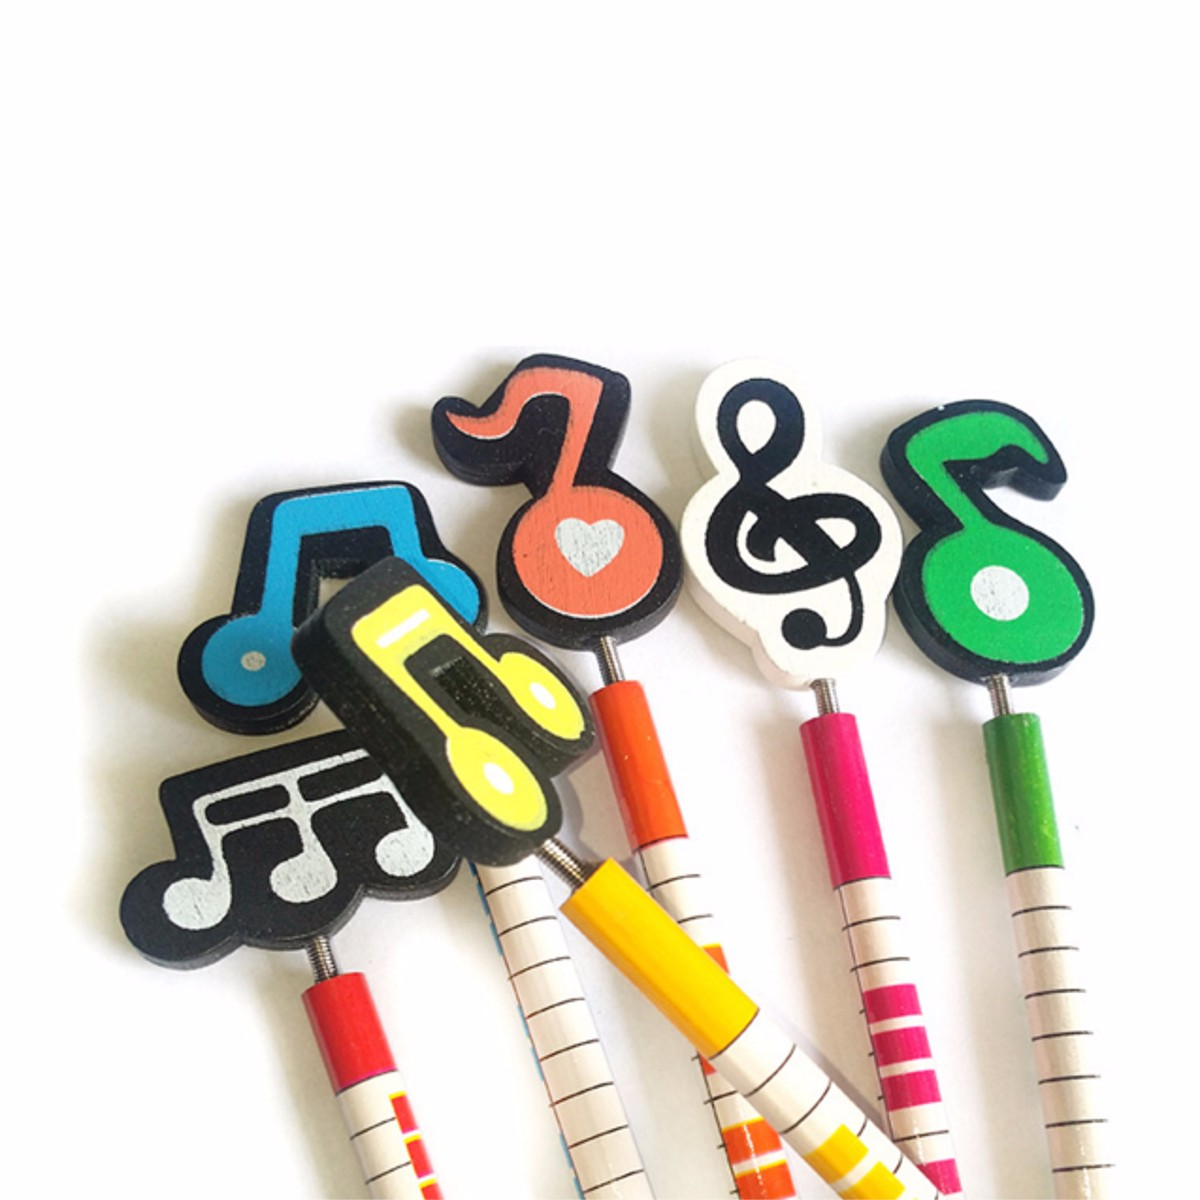 12 Pcs Wooden Musical Note Cartoon Pencils Stationery Gifts for Children